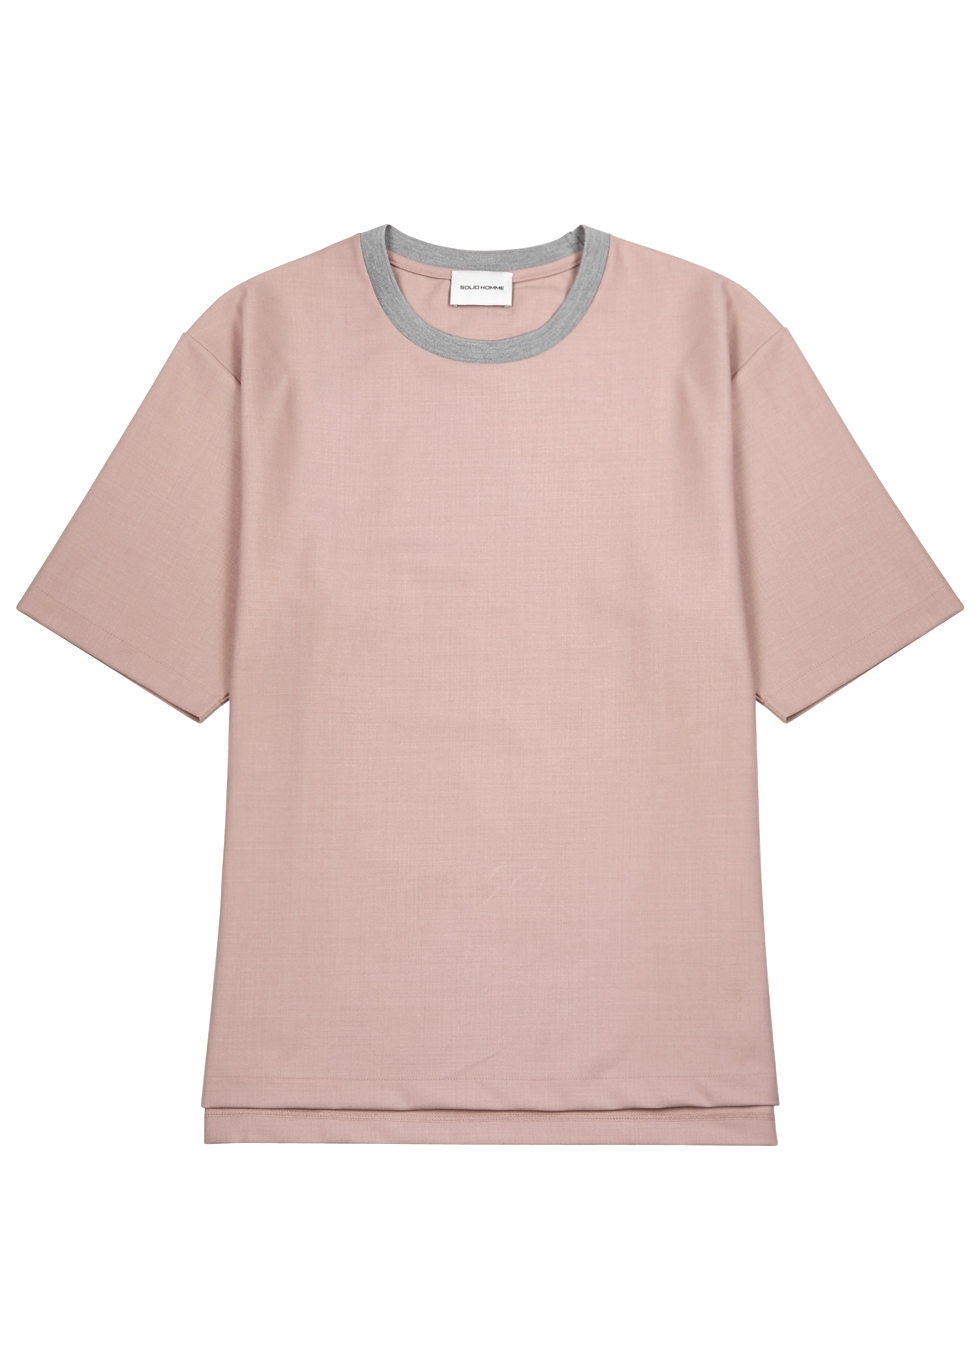 SOLID HOMME OVERSIZED PINK CONTRAST T-SHIRT